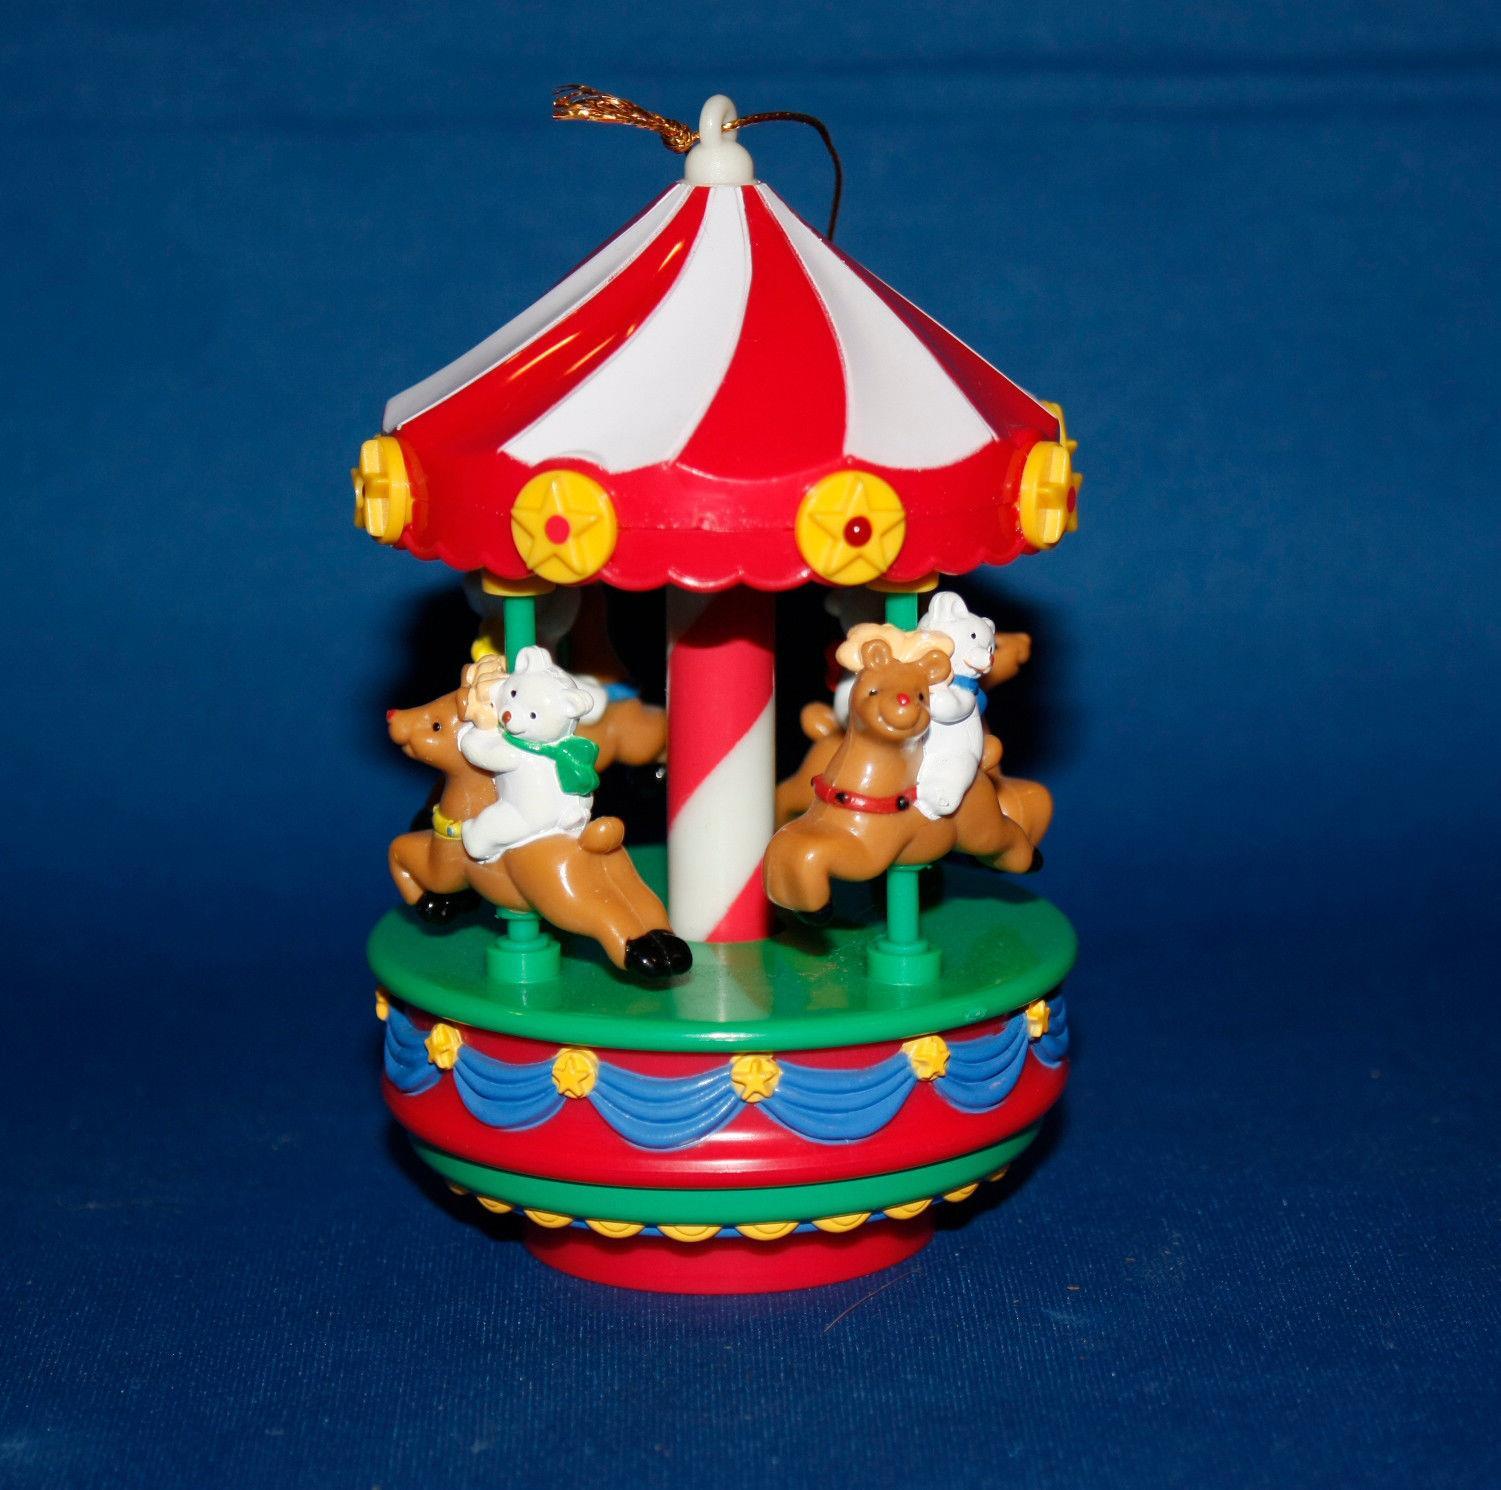 avon gift collection christmas carousel light up muscial ornament acclu ebay. Black Bedroom Furniture Sets. Home Design Ideas